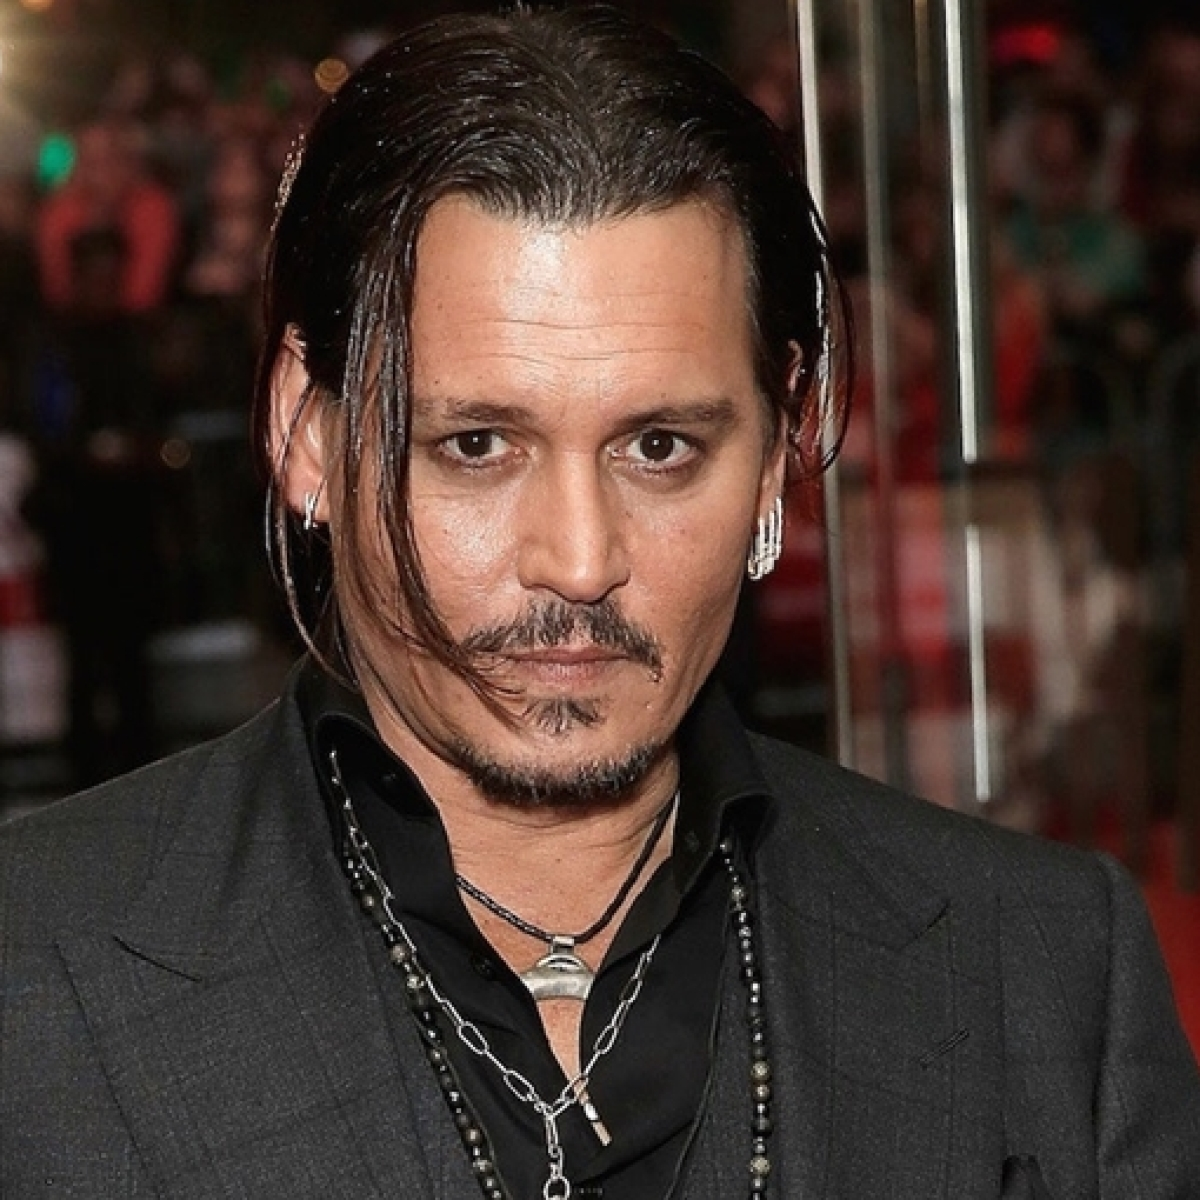 Johnny Depp says feces in bed was last straw in marriage to Amber Heard